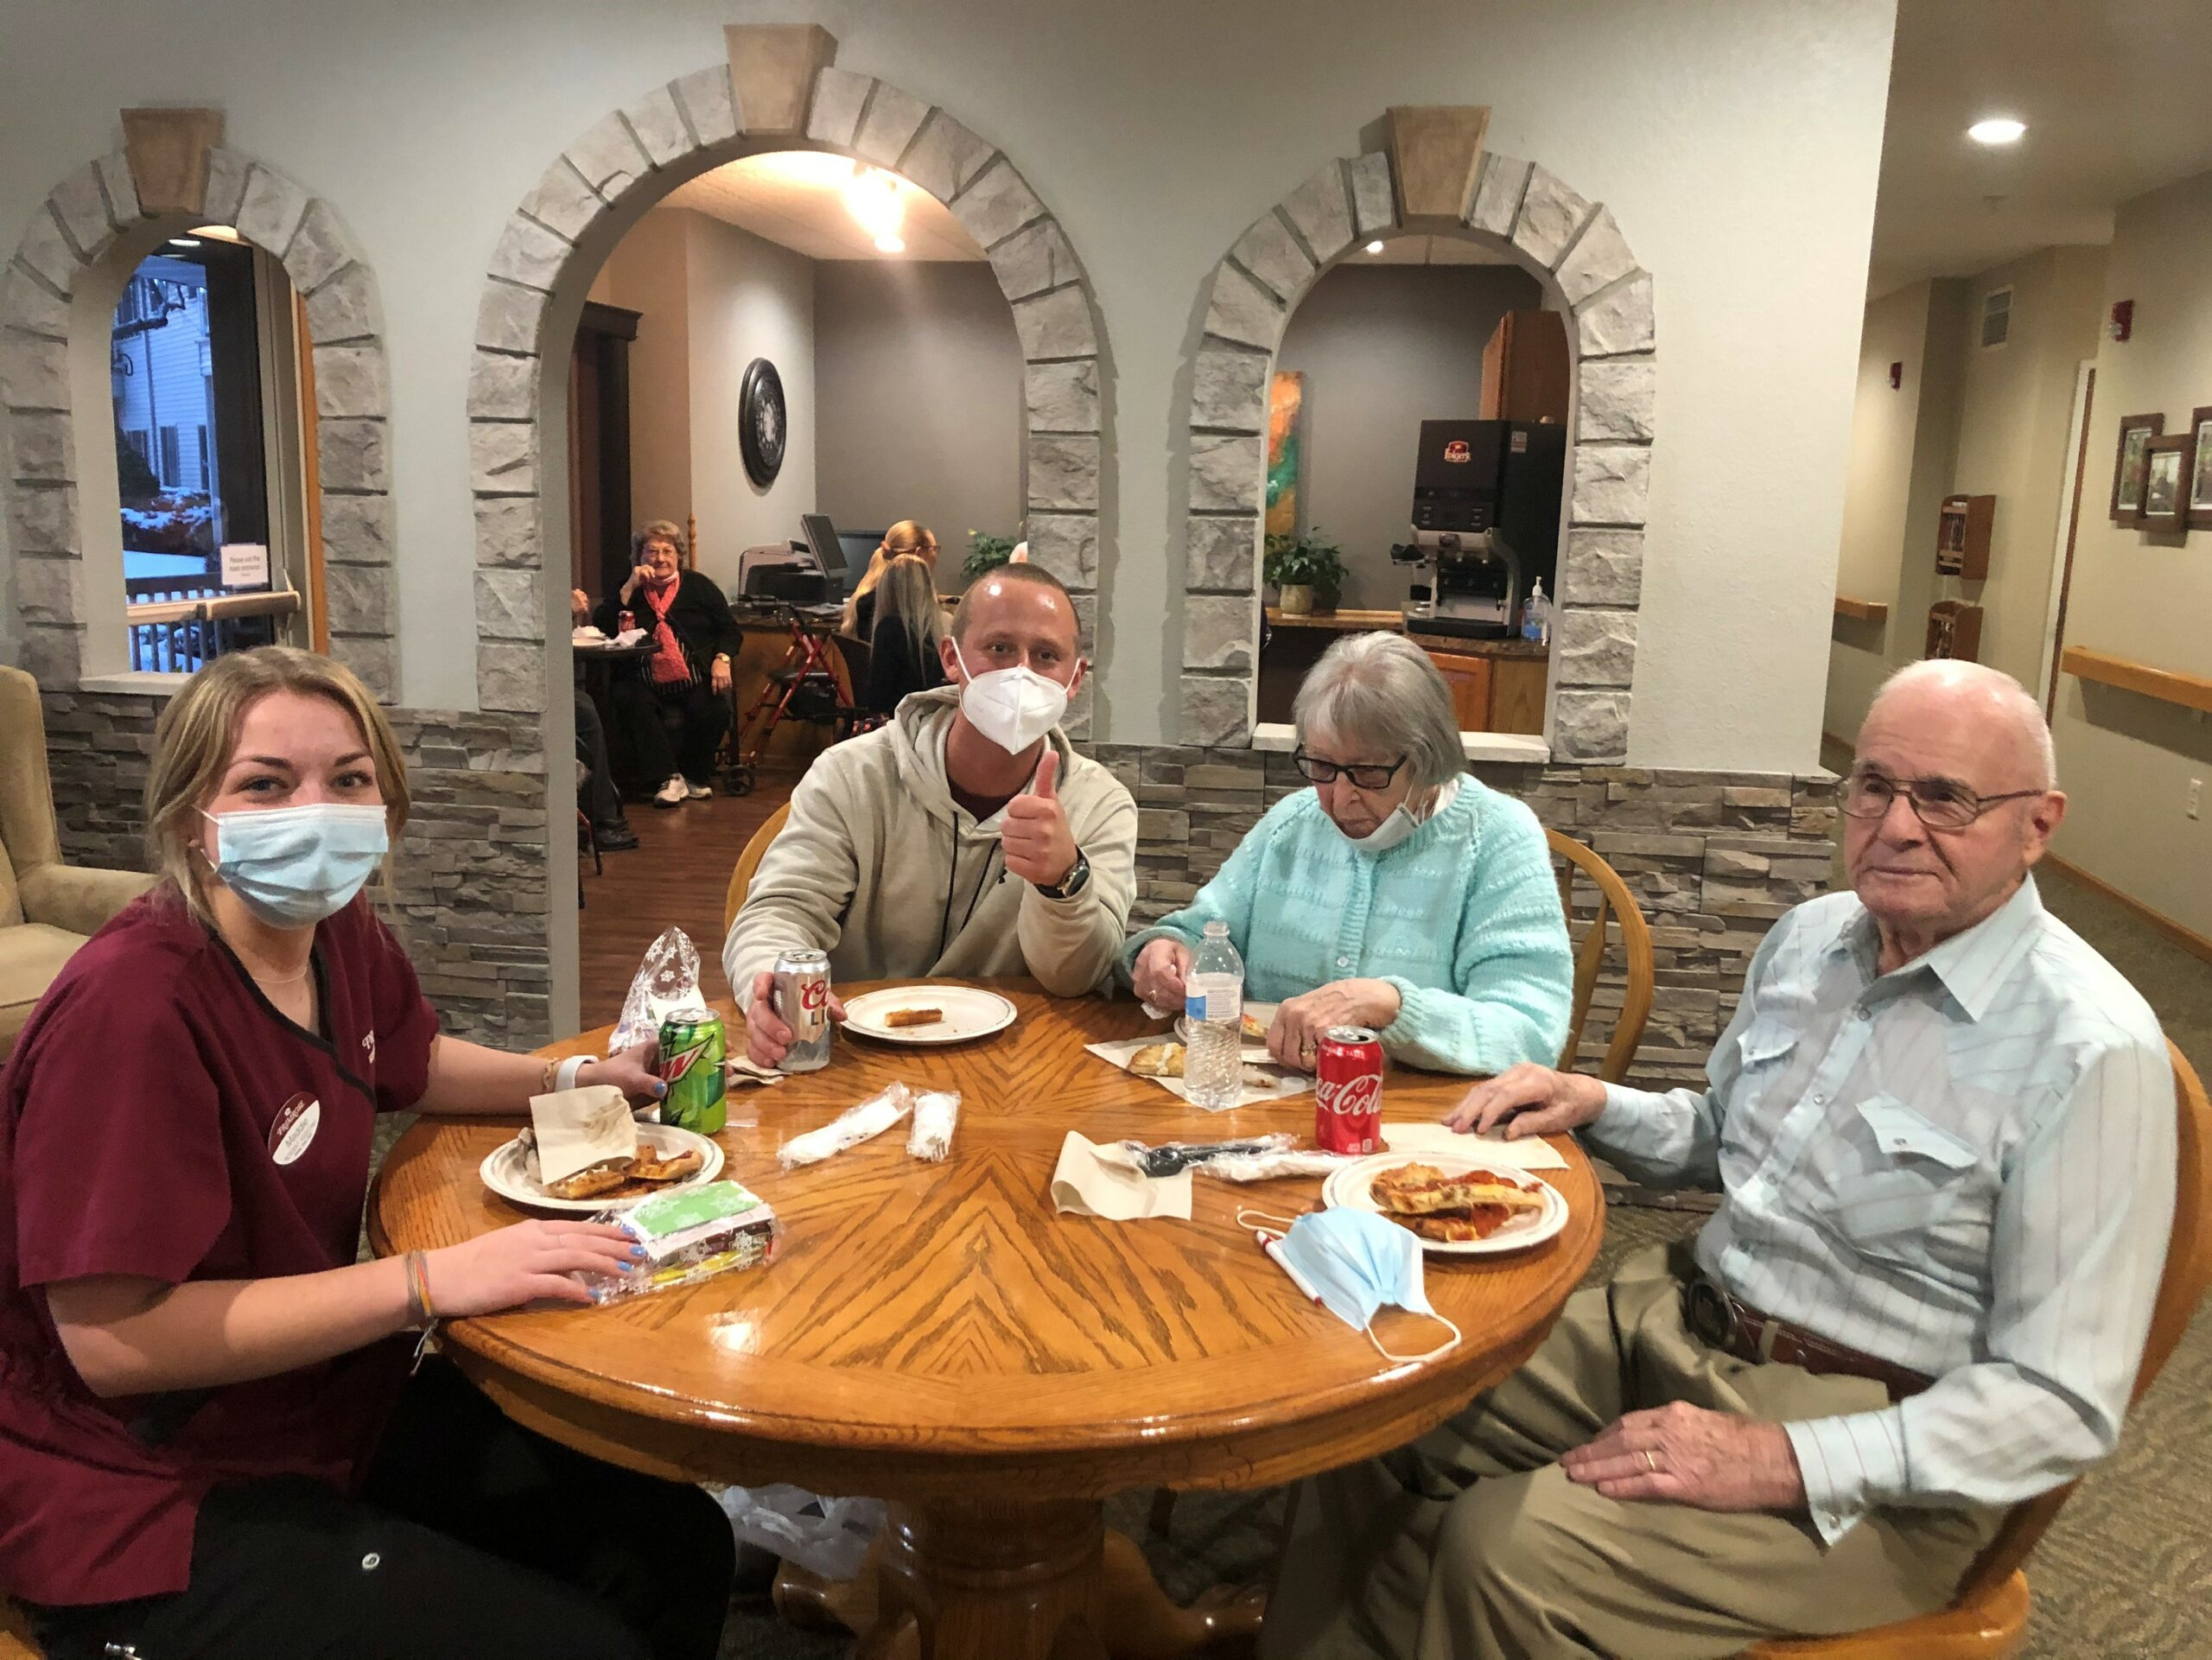 National Random Acts of Kindness Day gave residents an opportunity to have a pizza party & treat our younger staff members!